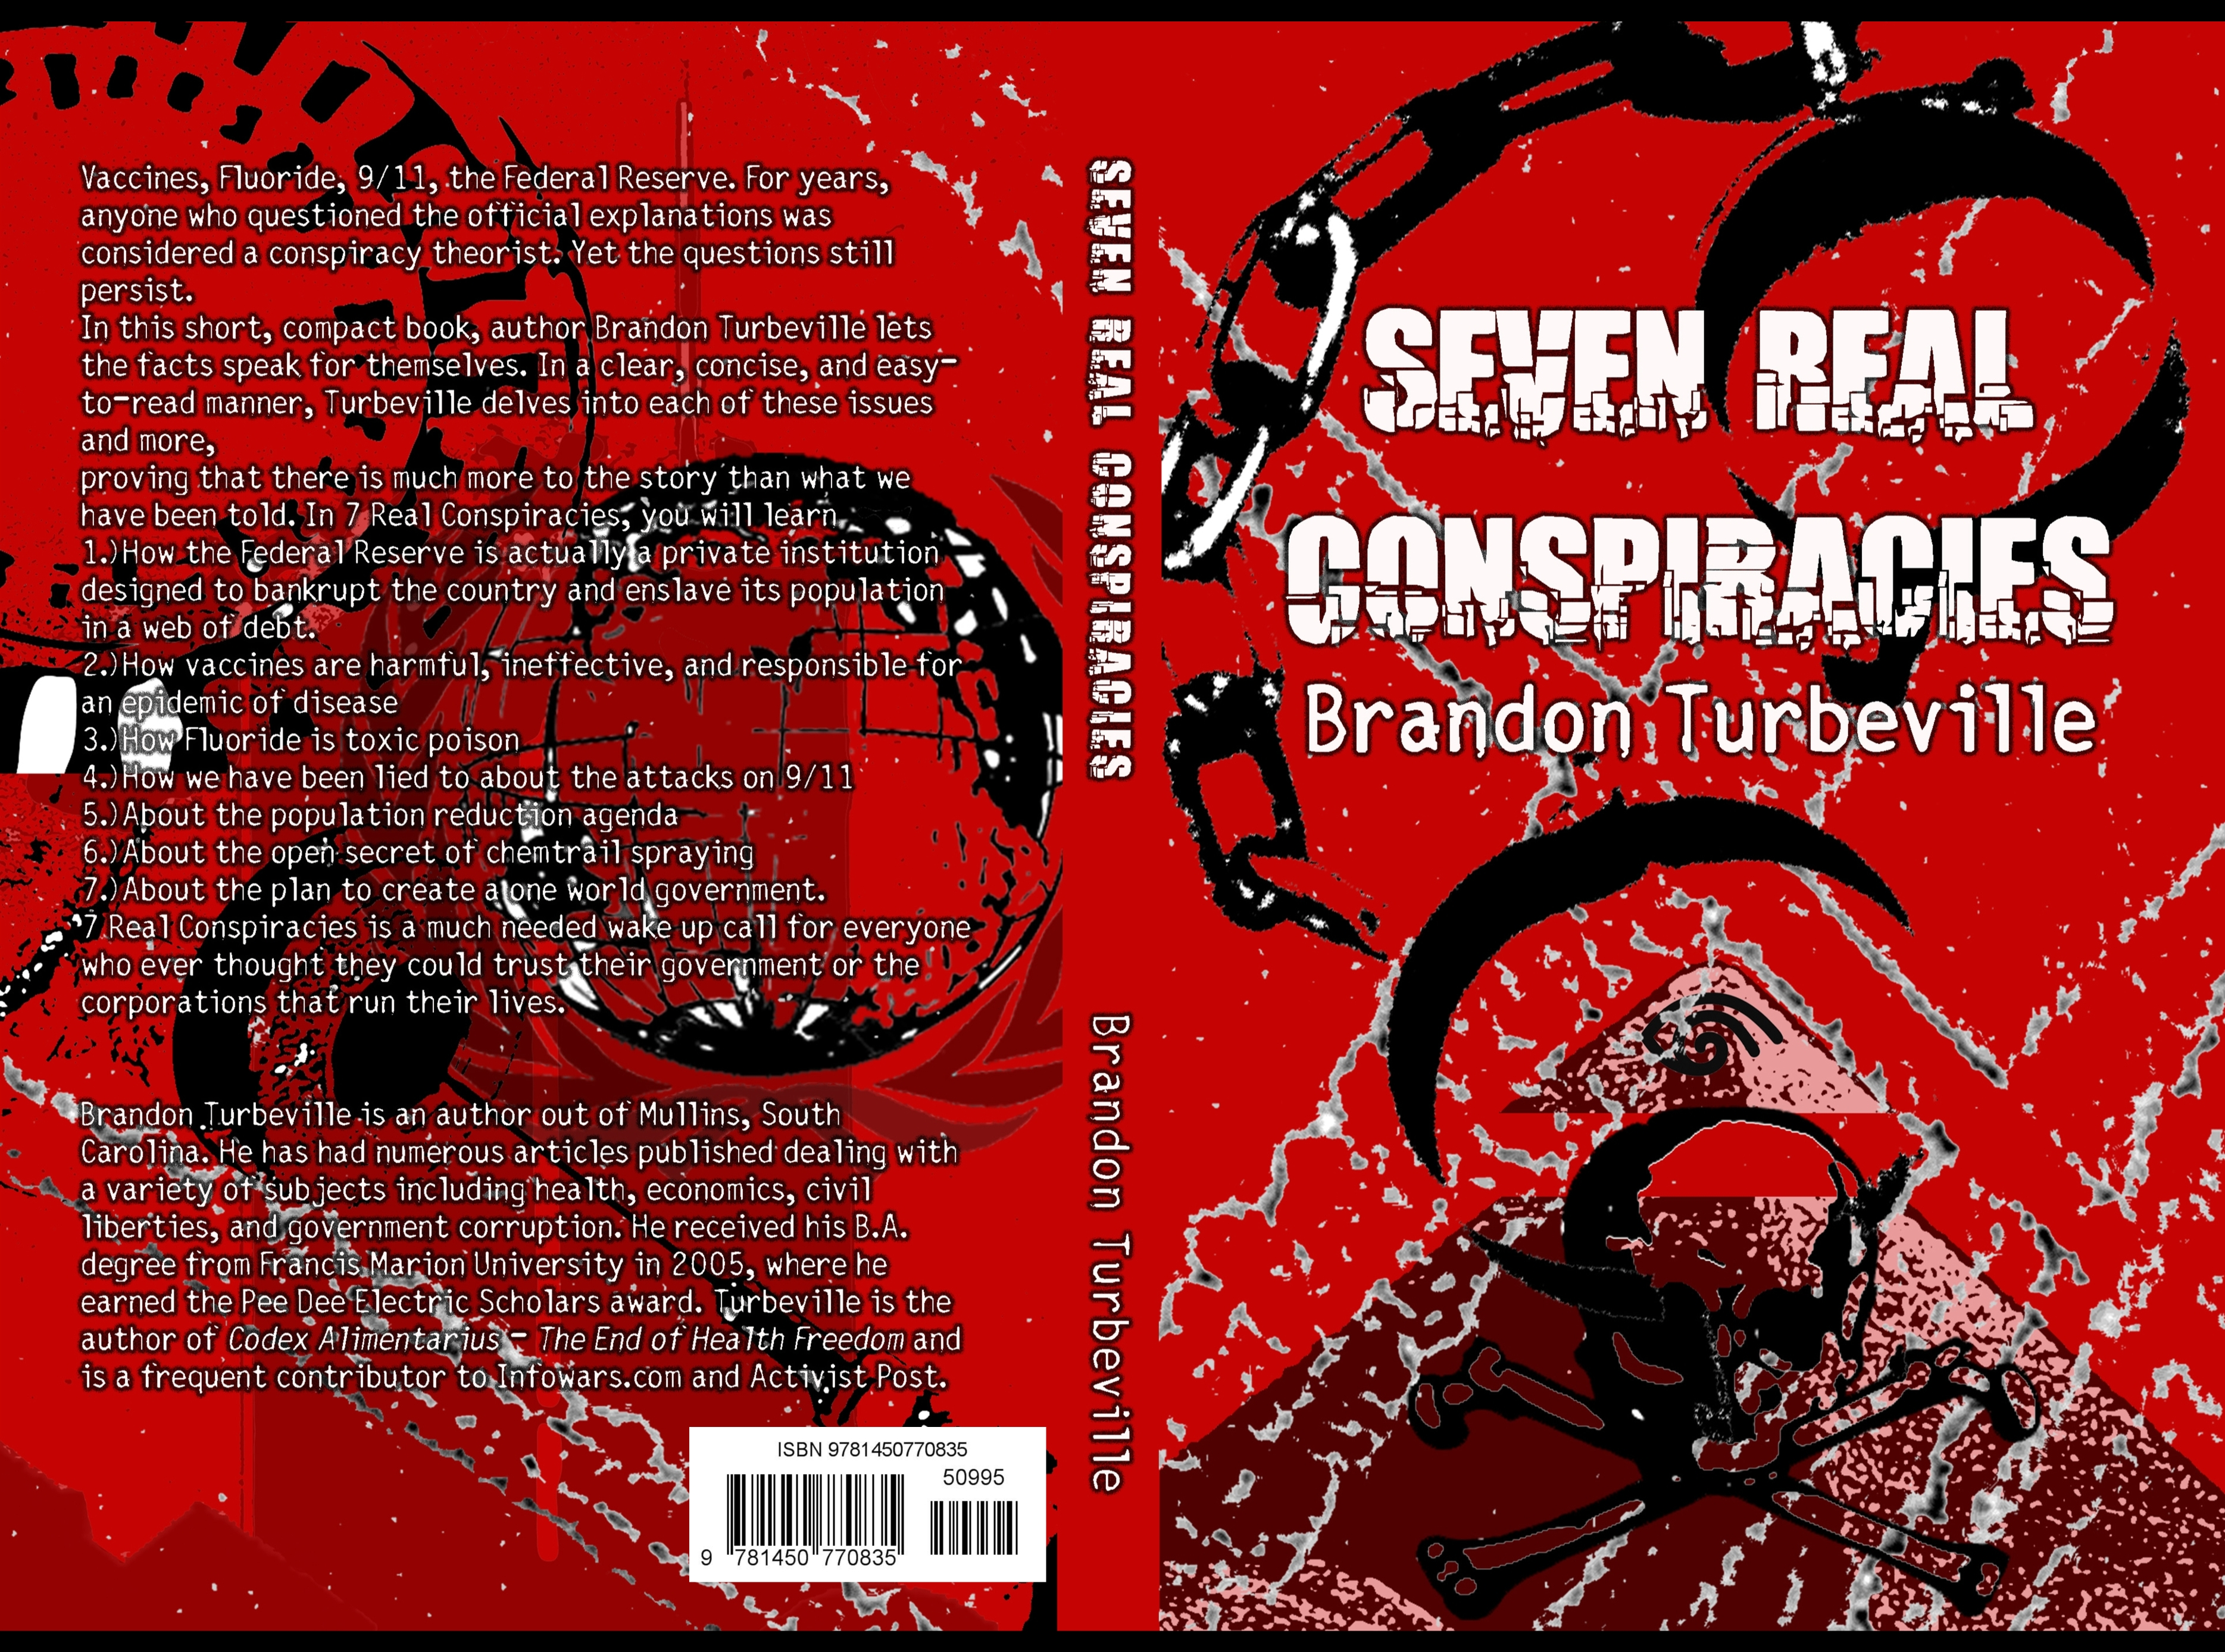 7 Real Conspiracies cover image